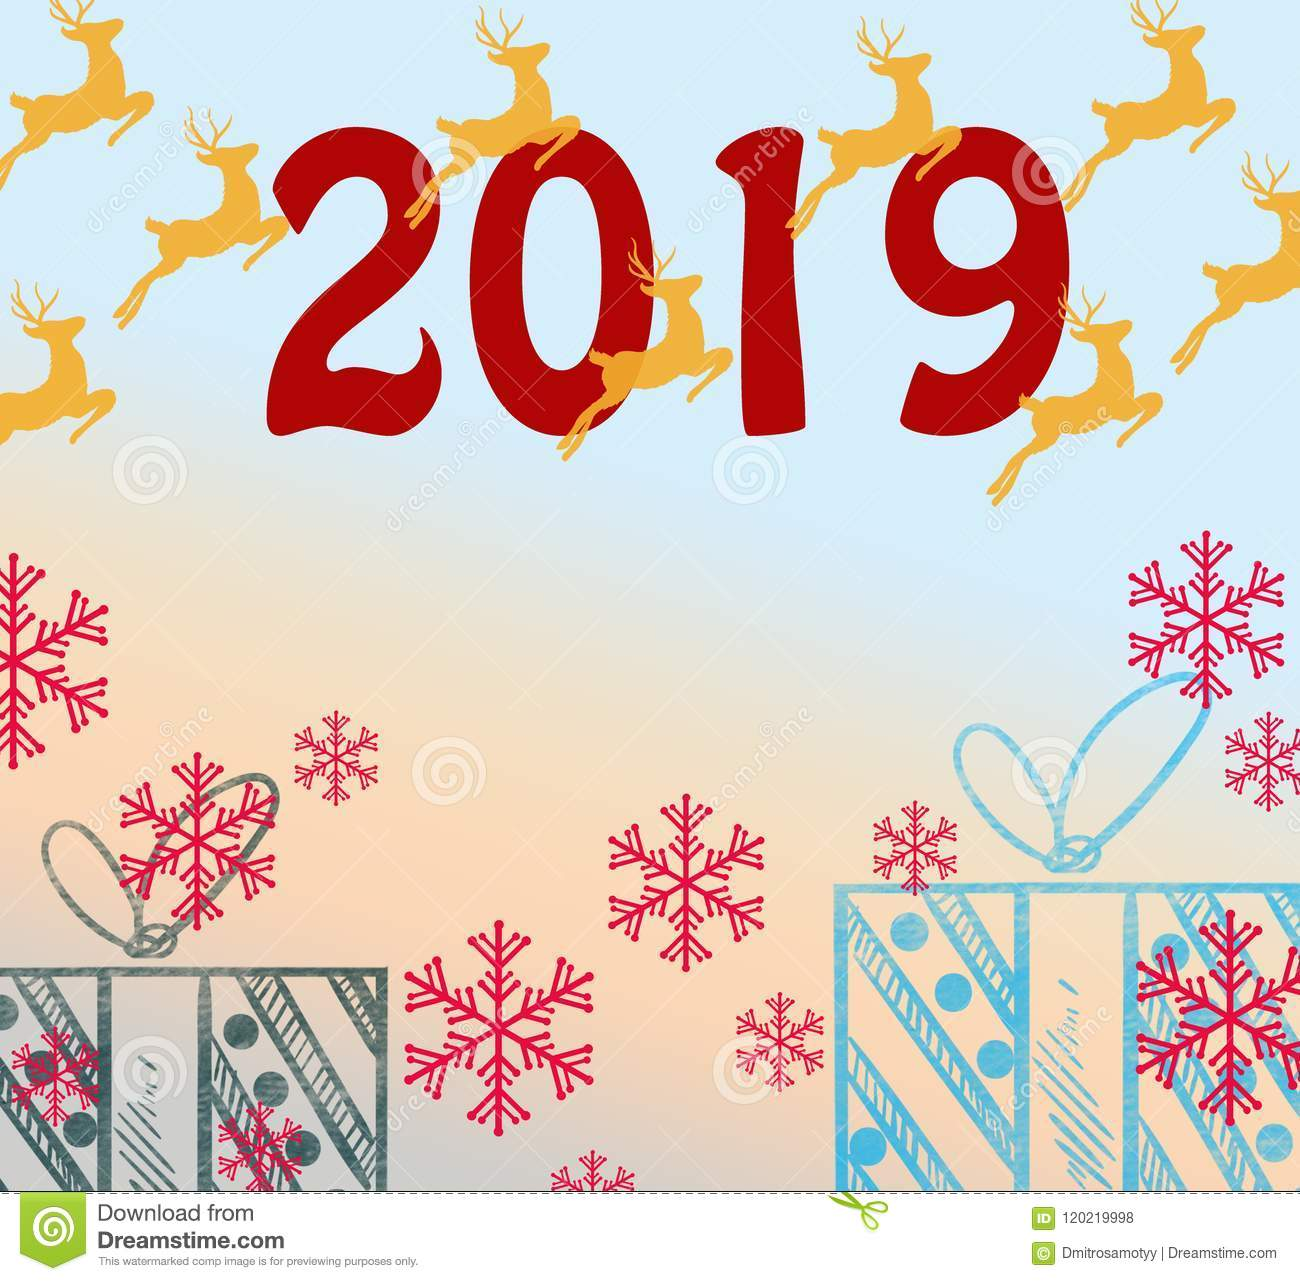 2019 happy new year greetings holidays colored background bubbles shape pattern funny isolated